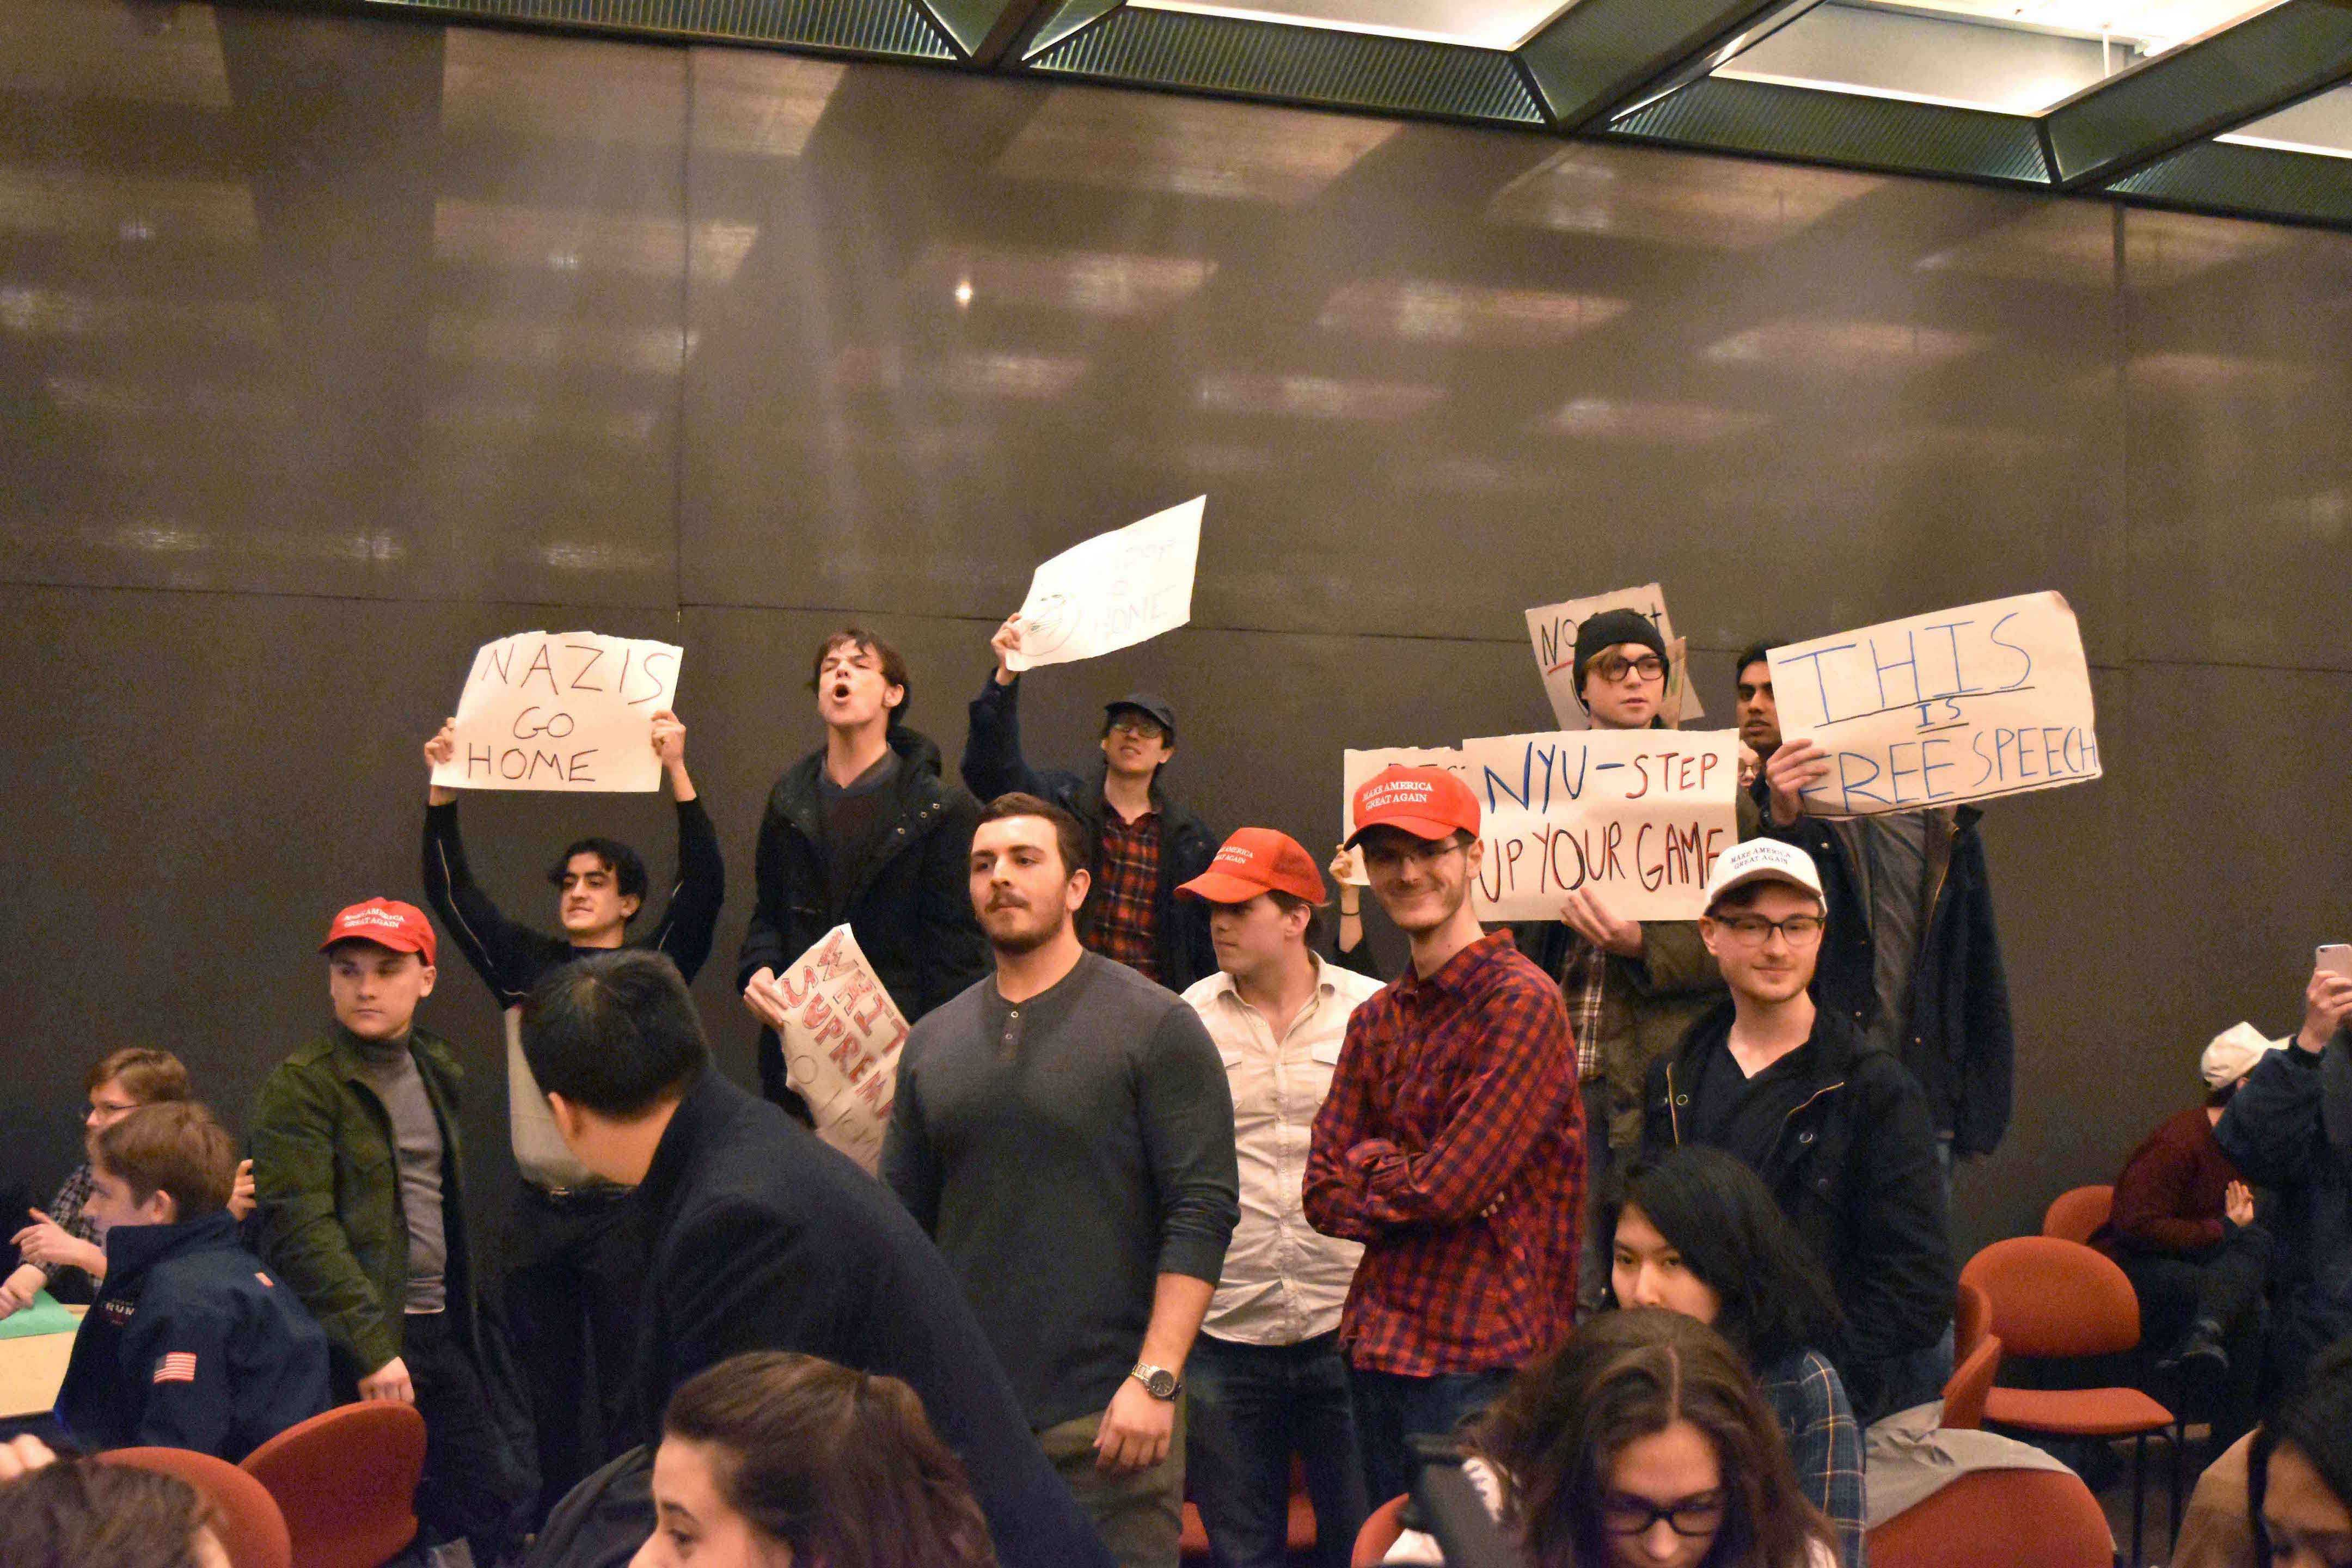 NYUCR members tried to block the protesters when Gavin McInnes spoke on Feb. 2, 2017. Since the NYUCR hosted the event, the club has increased in members.